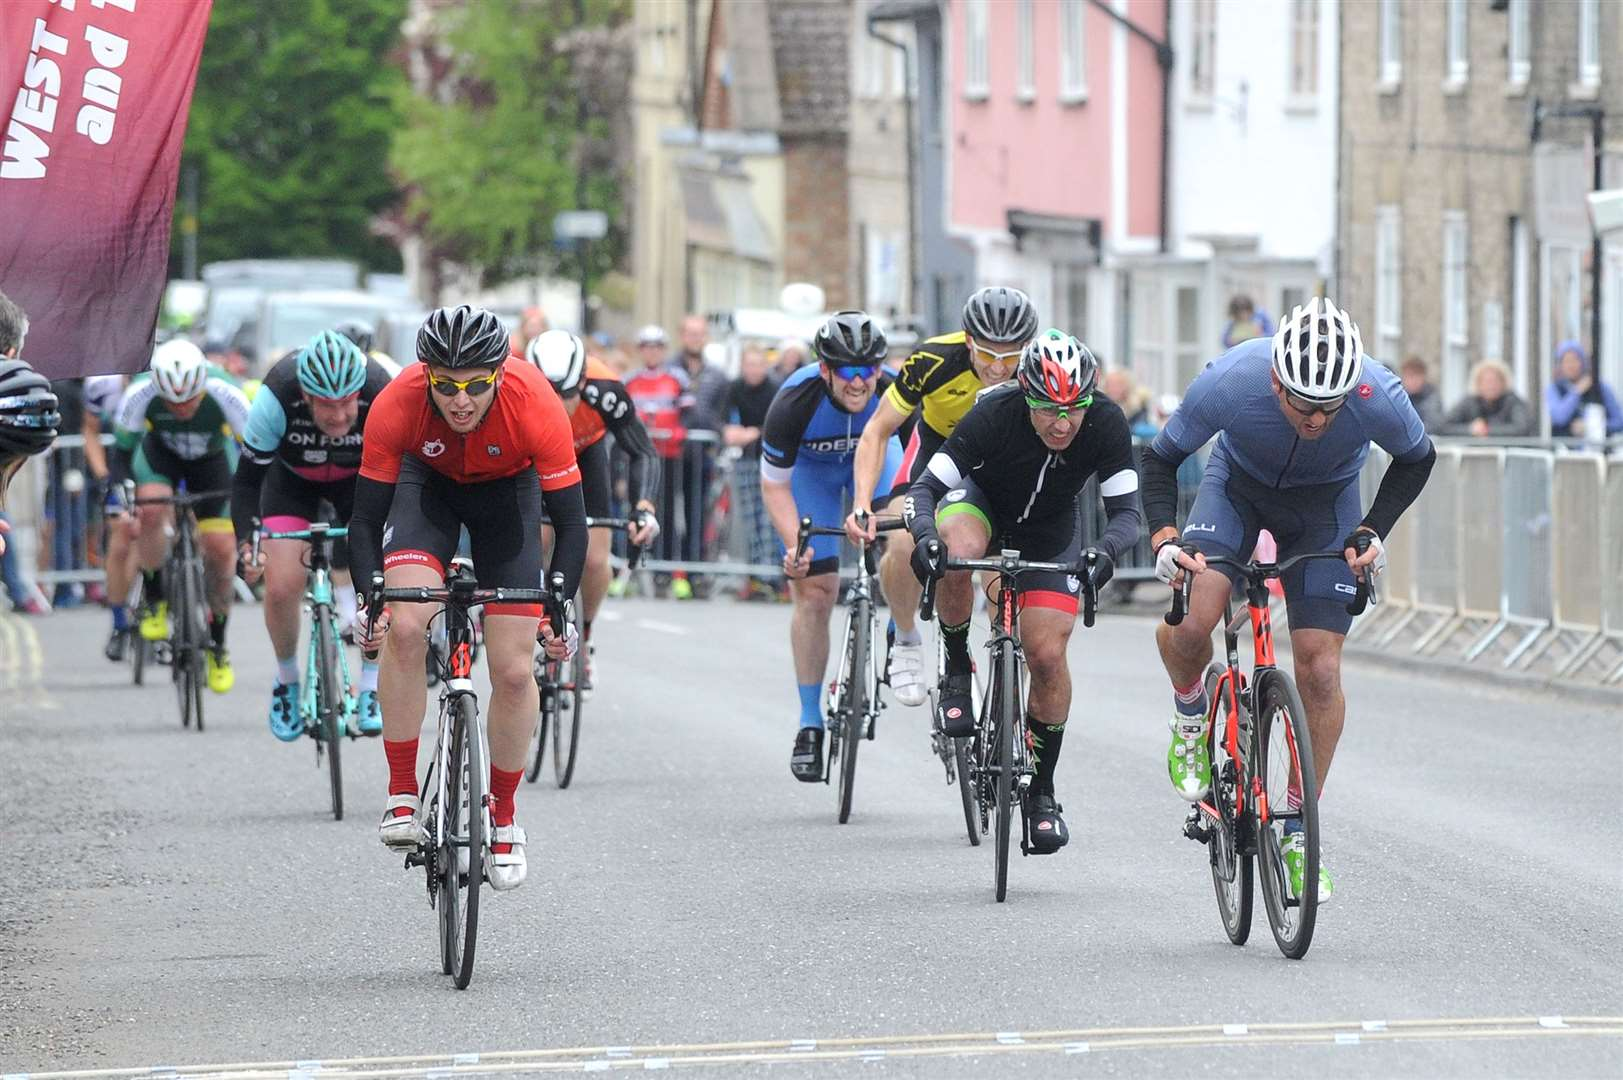 Action from the Senior and Junior Men fourth category race, sponsored by the Bury Free Press, at this year's Ixworth Cycle Races, held on Bank Holiday Monday Pictures: Mecha Morton